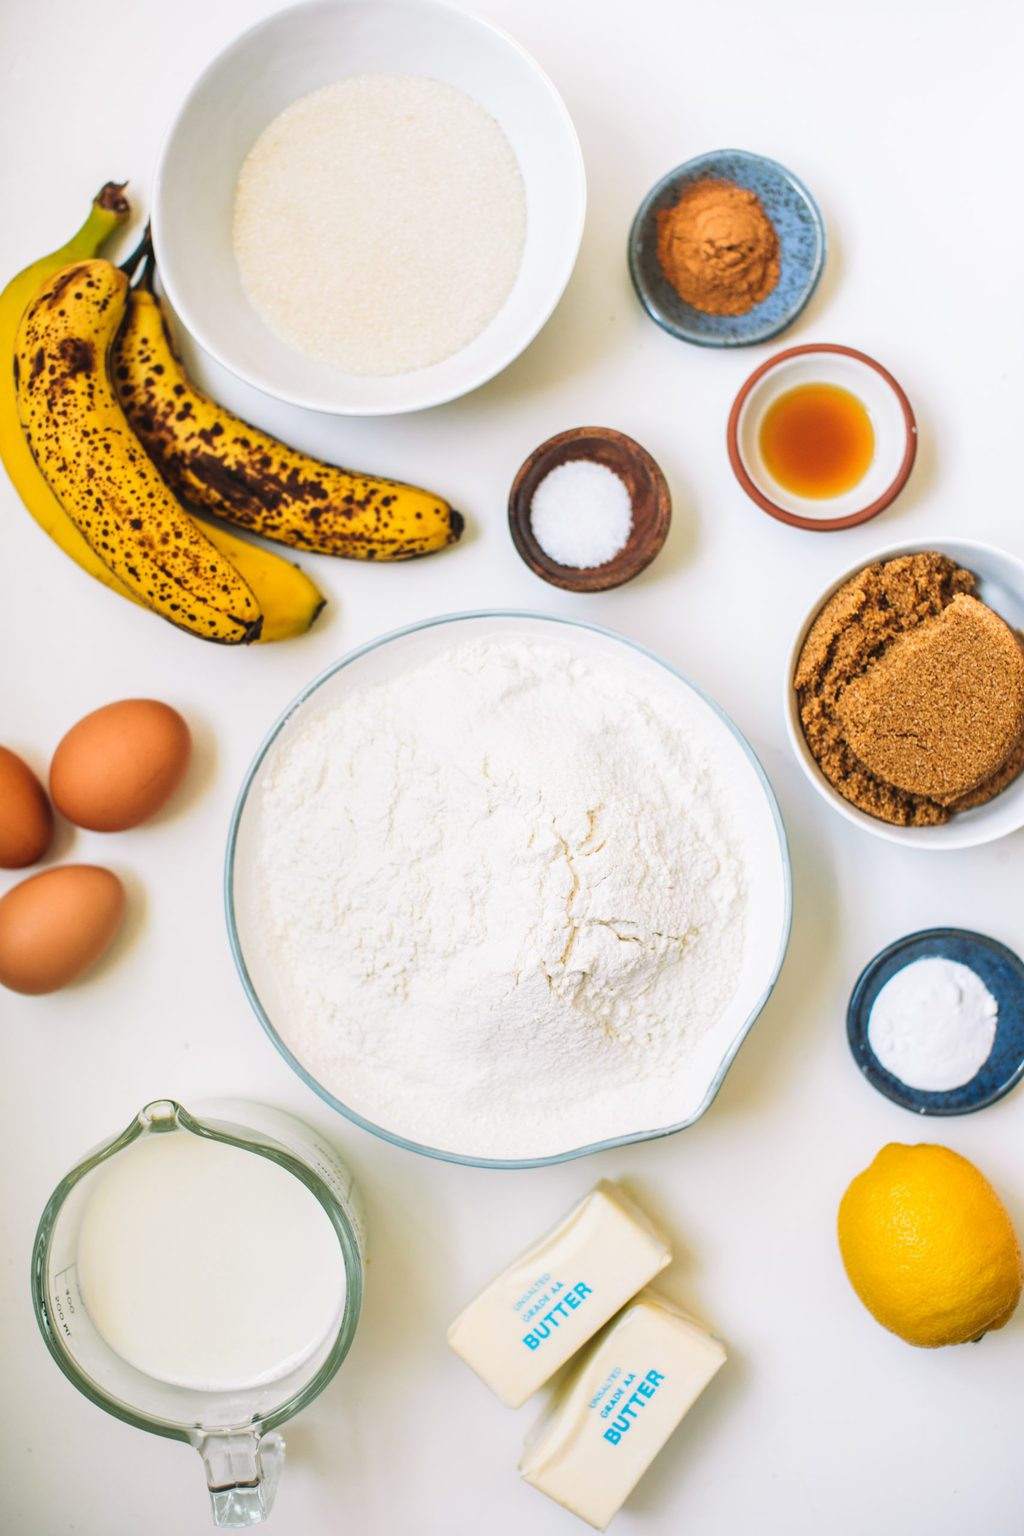 Ingredients for caramel and banana cake spread out on white countertop.